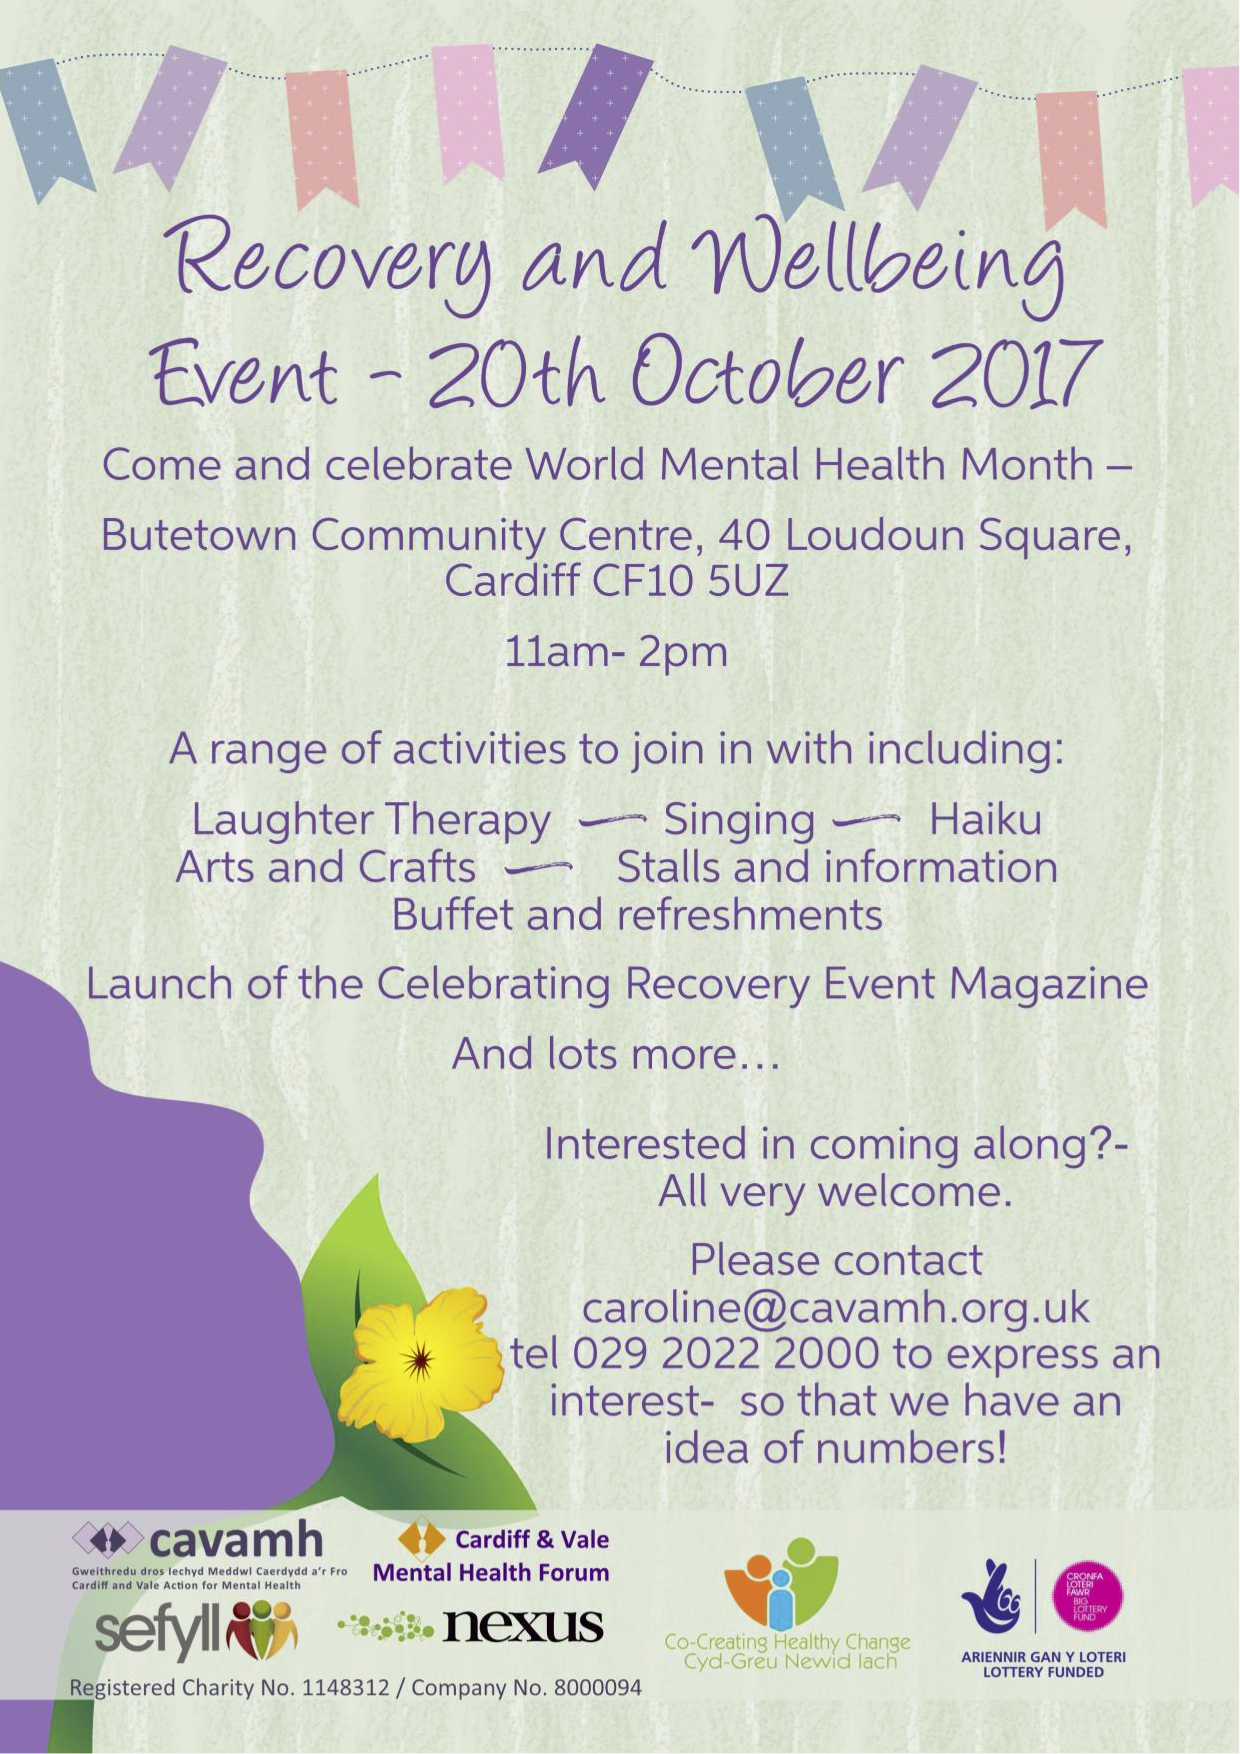 Recovery and Wellbeing event 20th Oct 2017